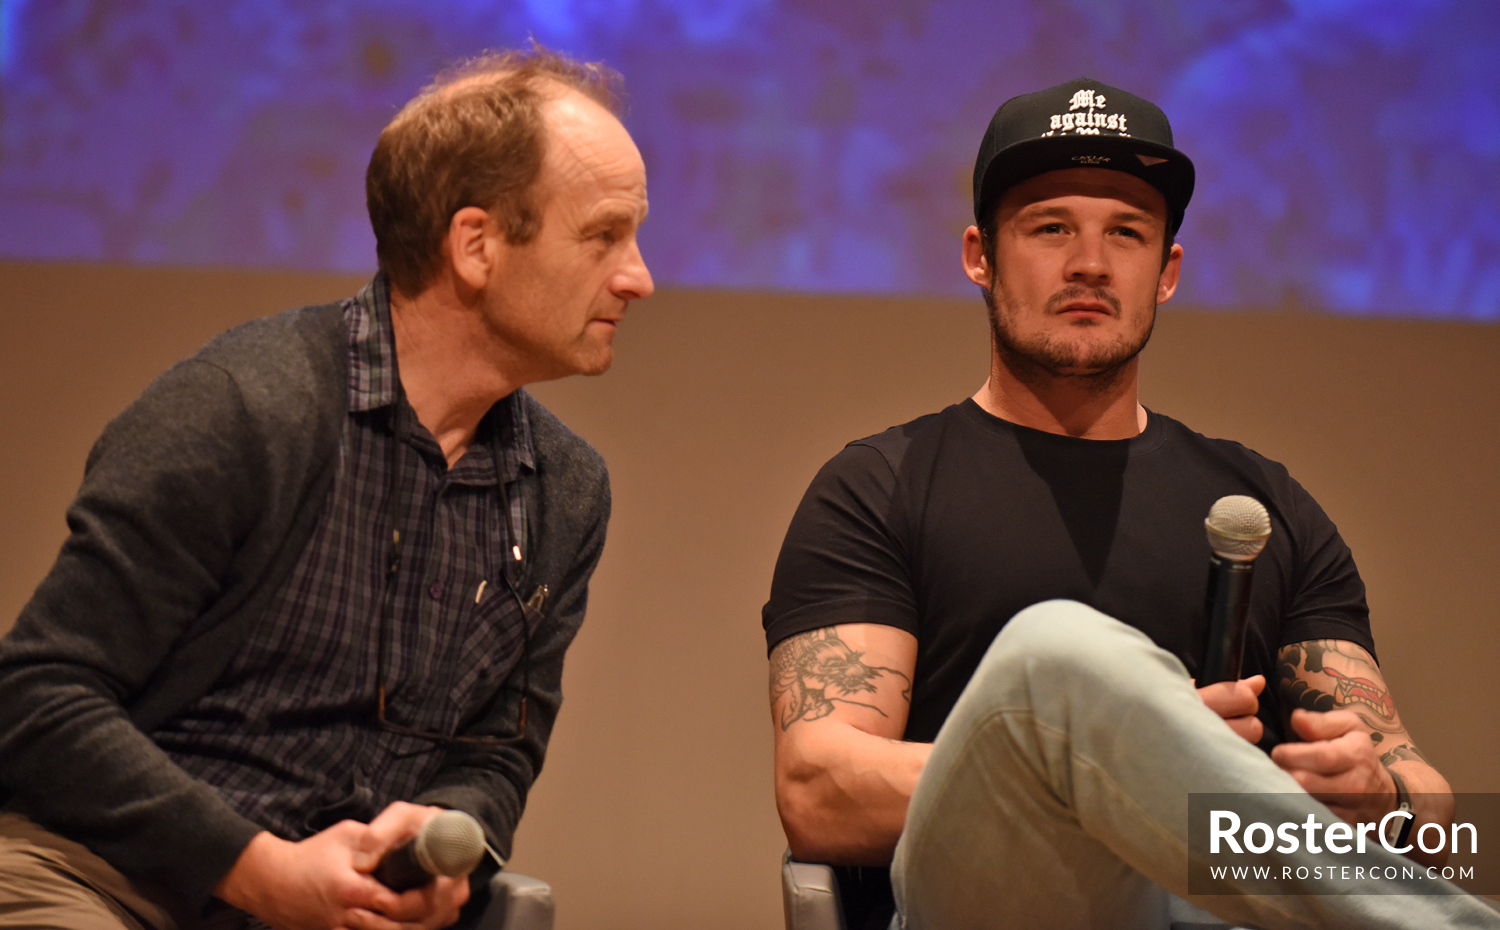 Panel Adrian Rawlins Josh Herdman Harry Potter Comic Con Paris 2018 Roster Con His father is an actor and got him an agent. roster con